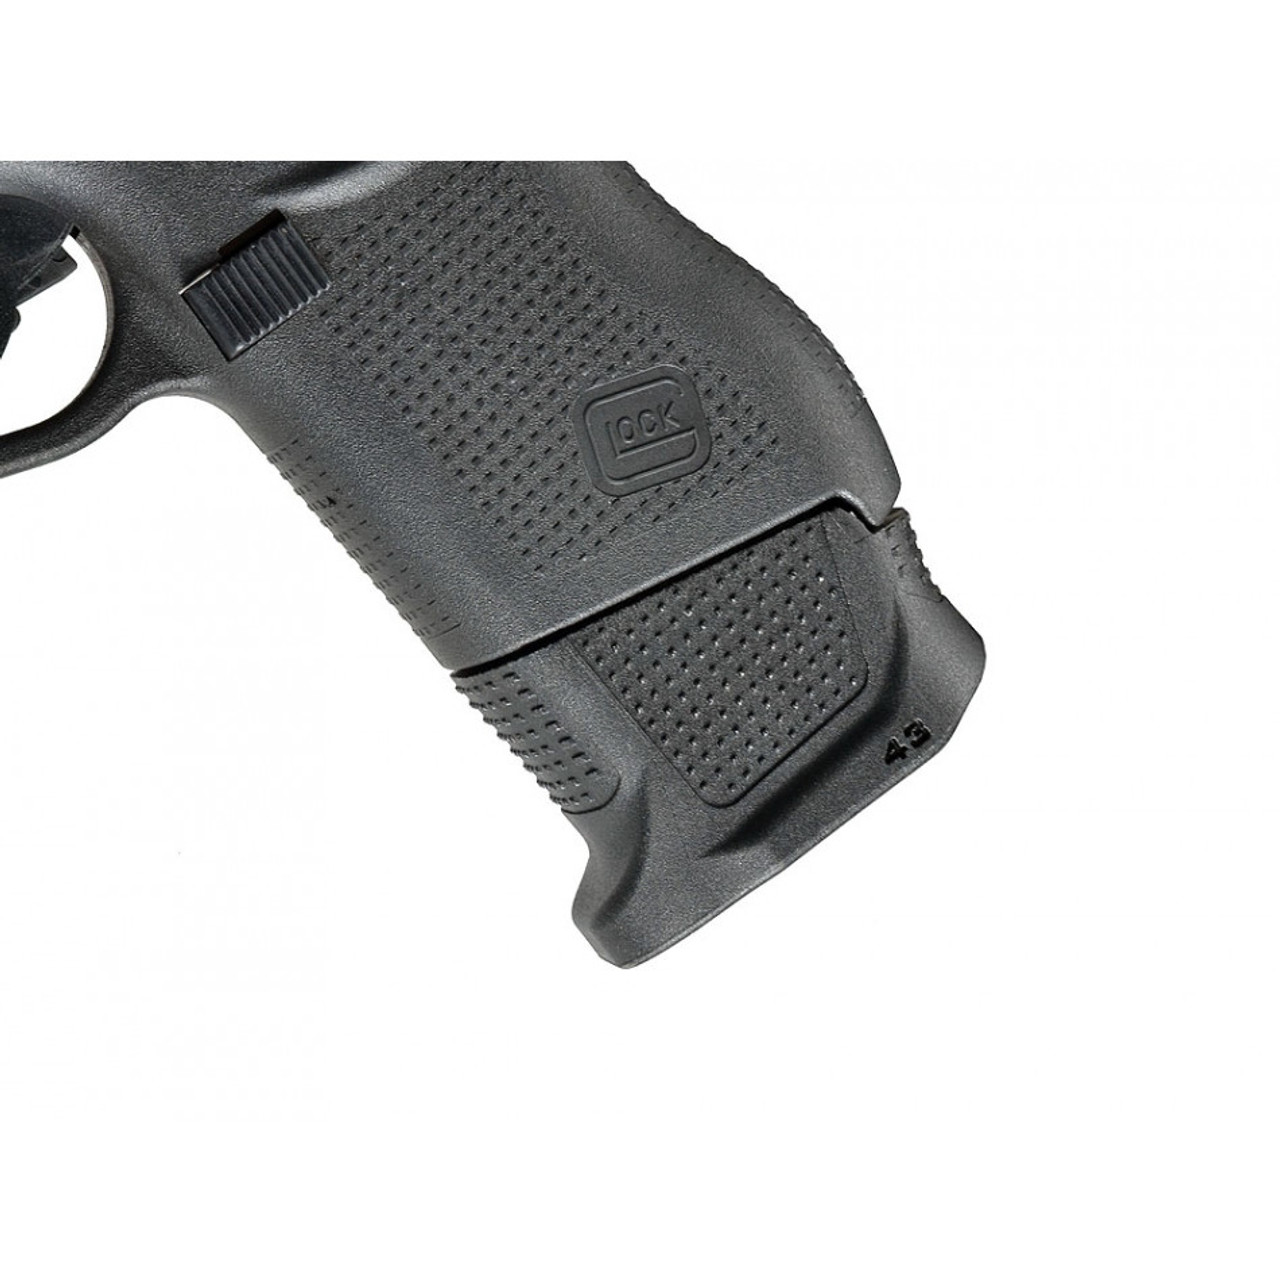 Strike Industries Enhanced Magazine Plate for Glock 43 - Plus 3 side view